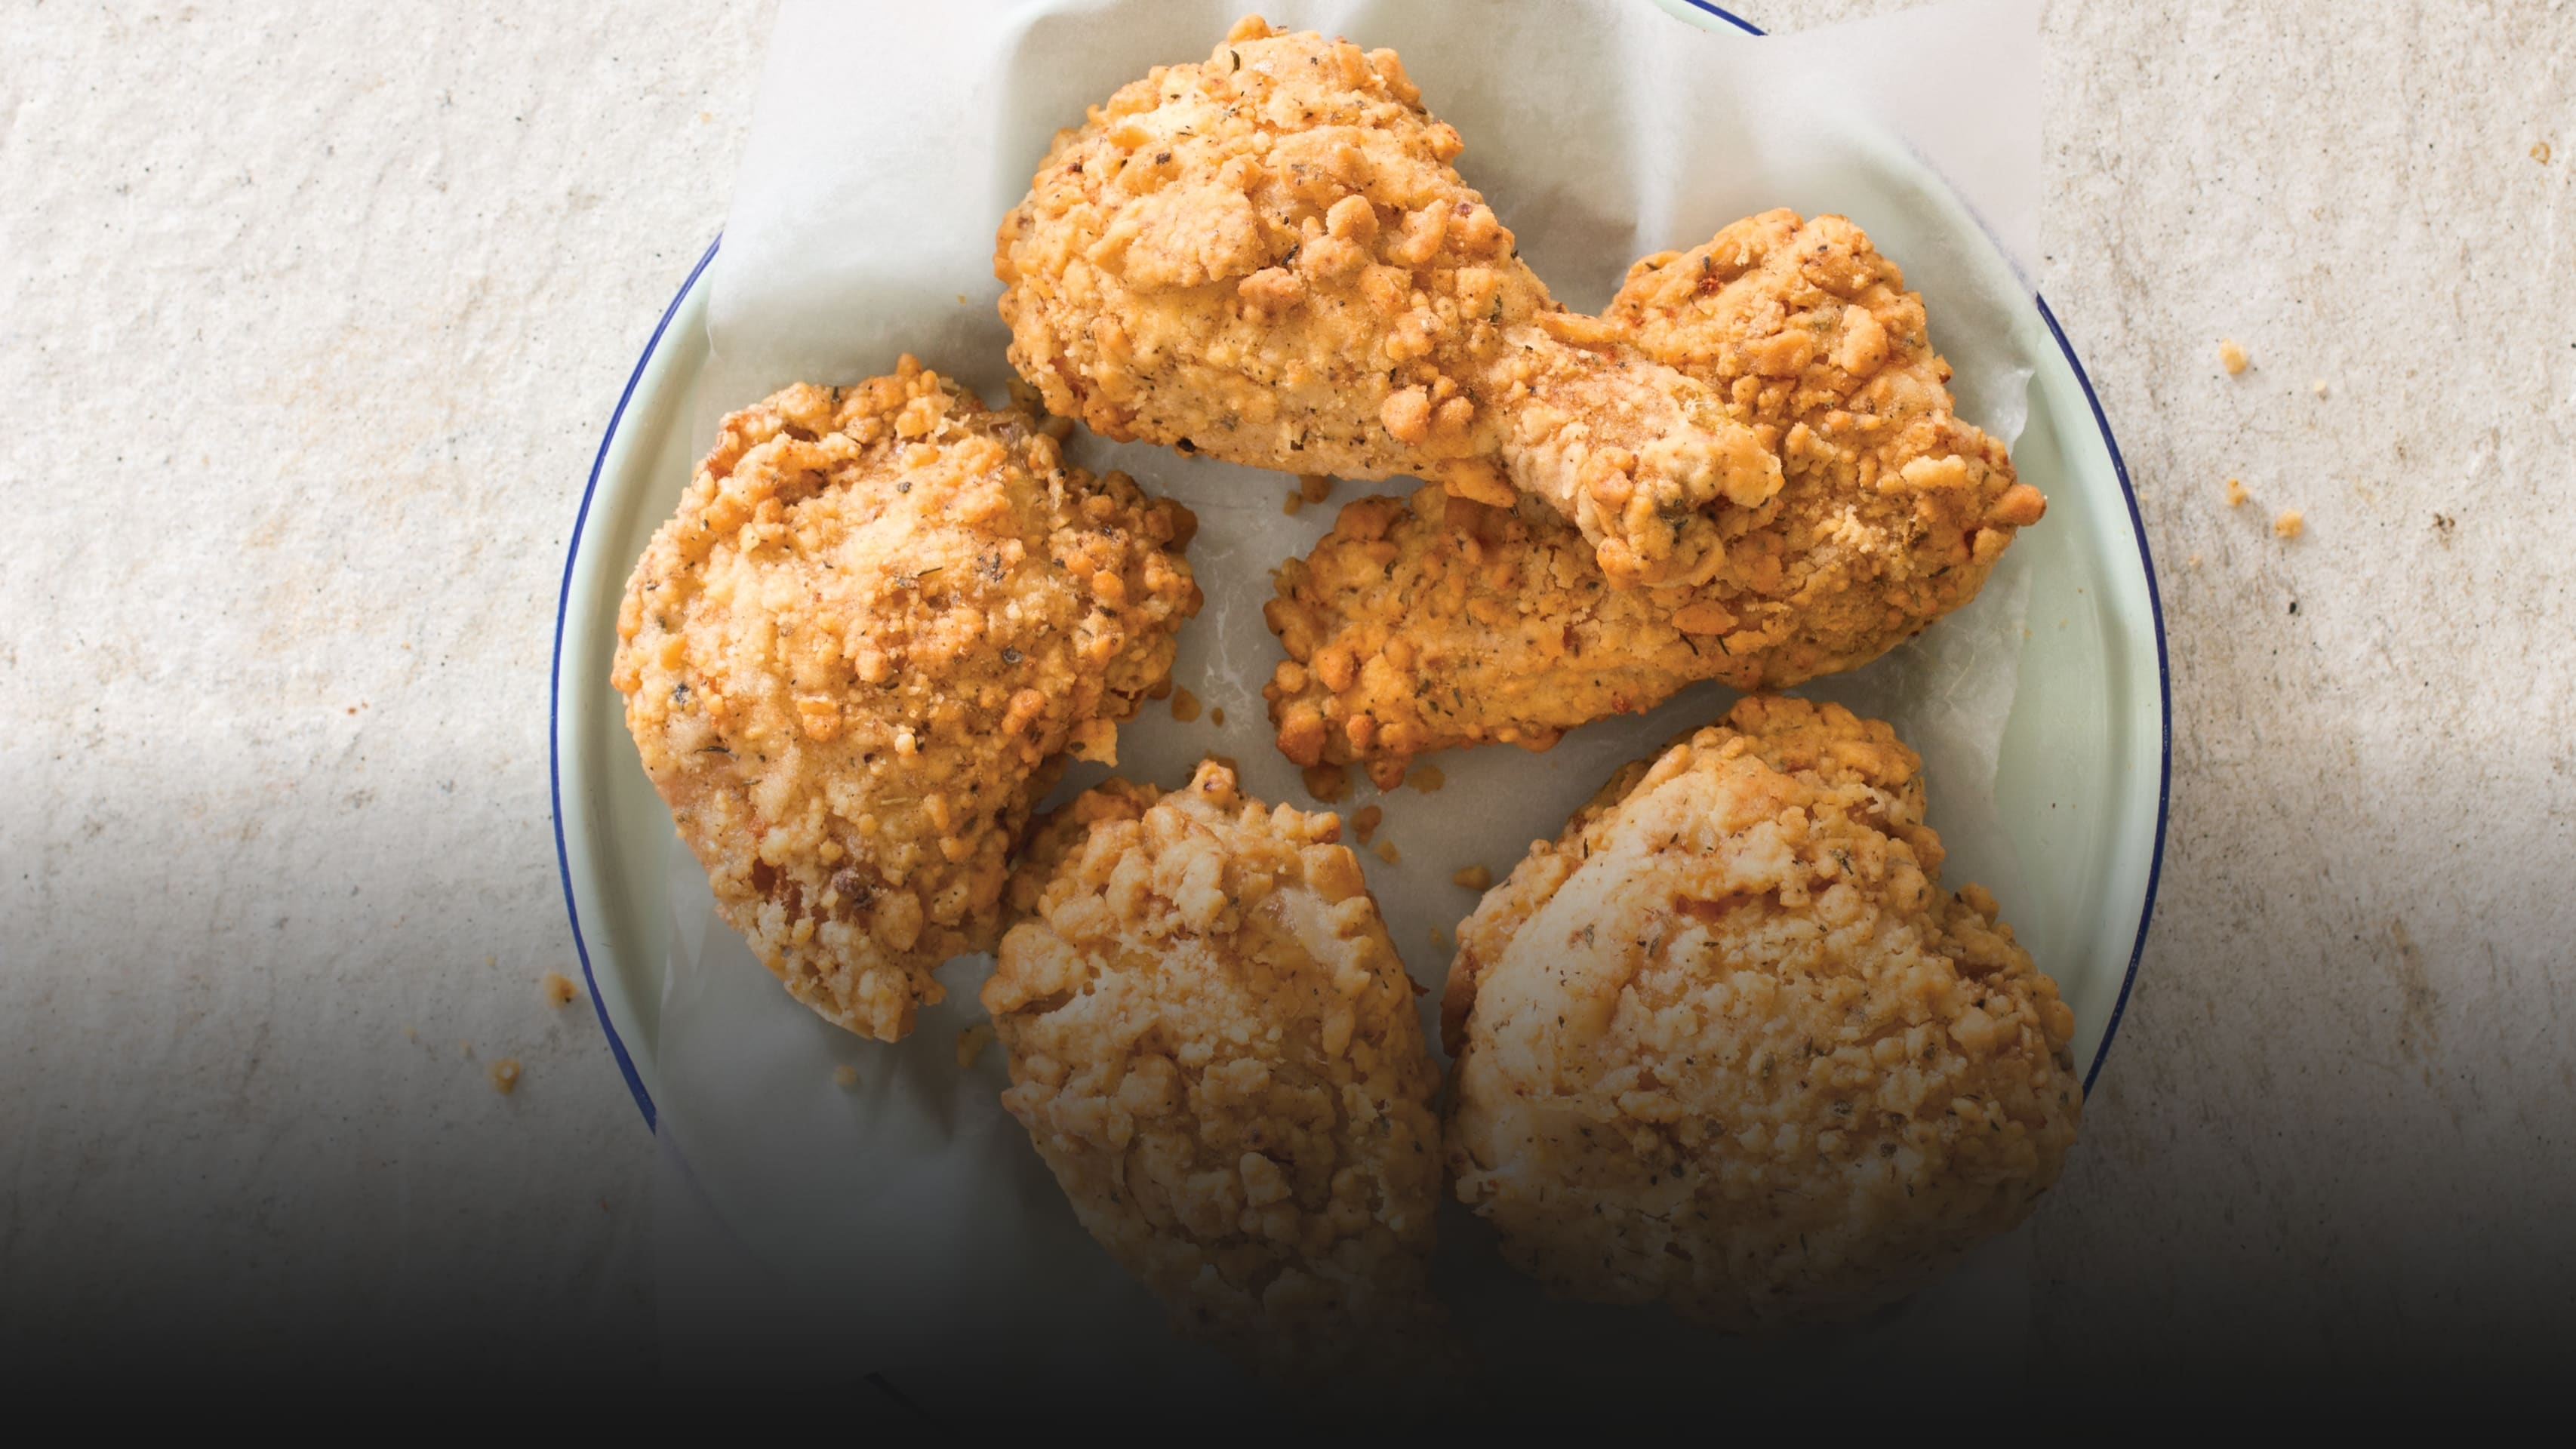 Wondra Flour is the Secret to Cold Crispy Fried Chicken